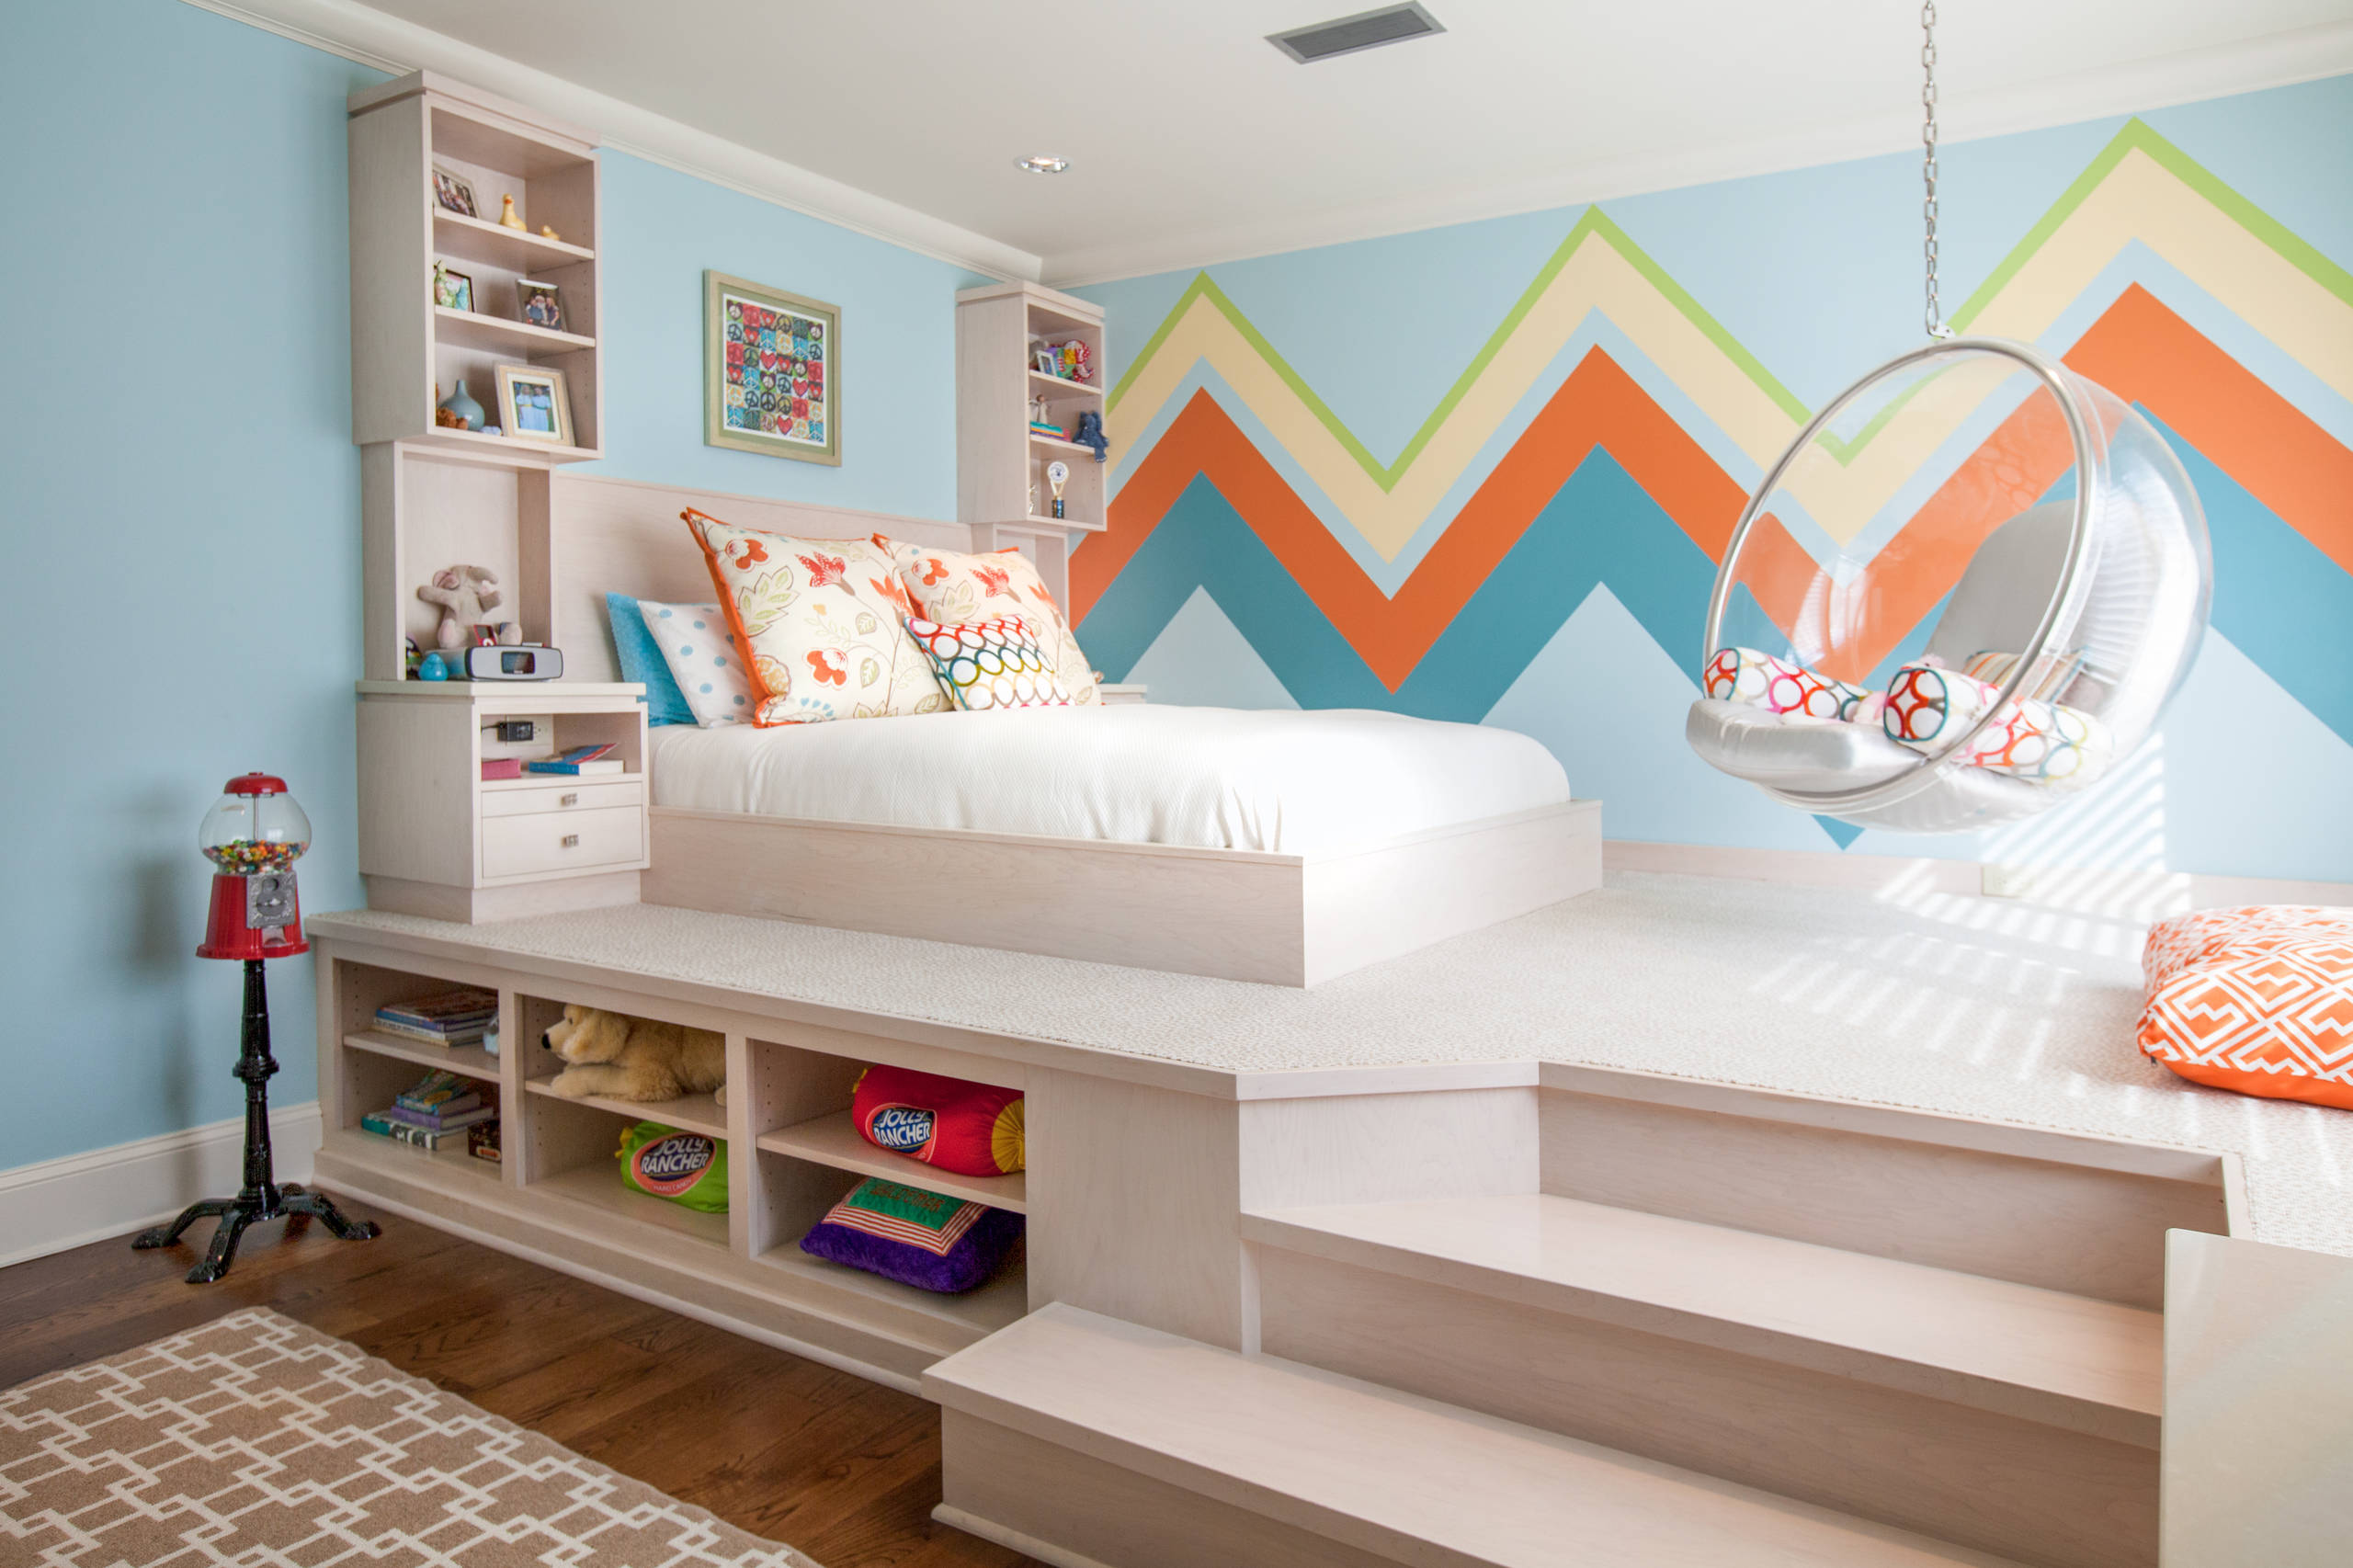 Cost to paint walls in Contemporary bedroom bedding bedside table bunk beds staircase drawers